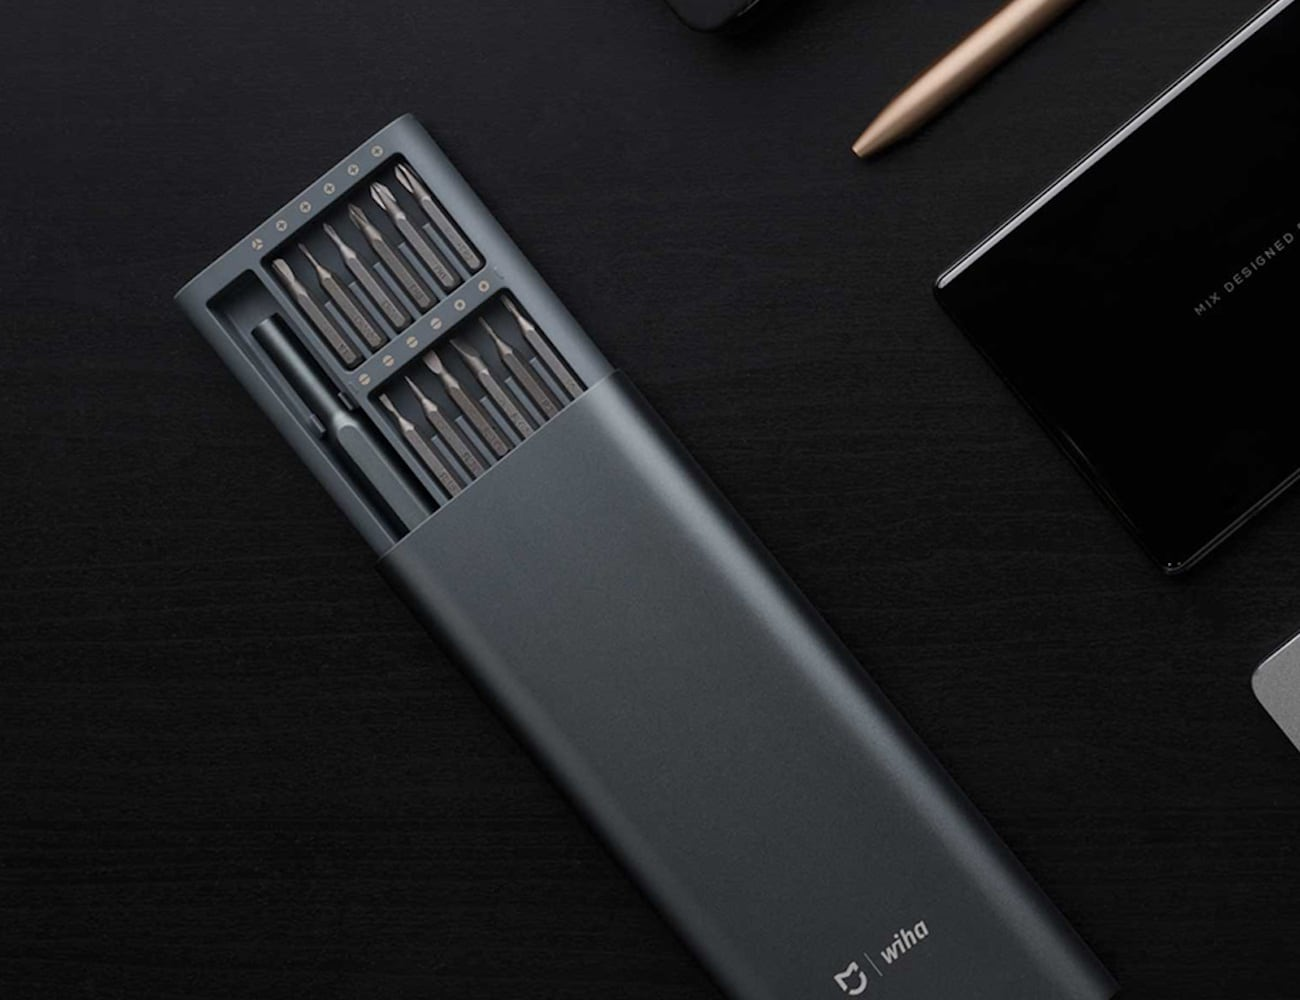 Xiaomi Wiha Precision Screwdriver Set has 24 magnetic bits for accuracy